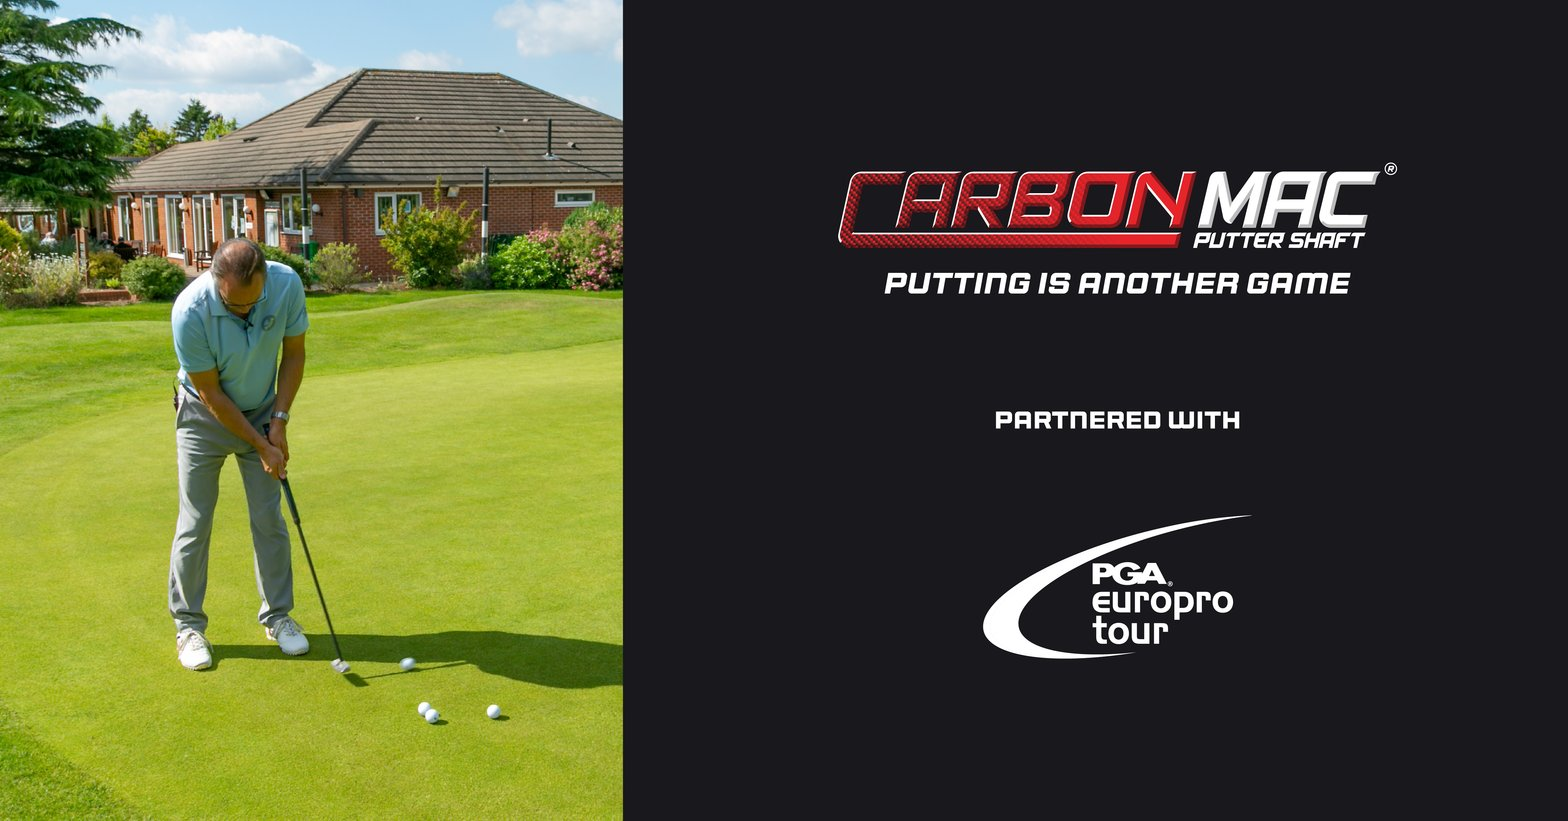 Carbon Mac the new official putter shaft of the PGA EuroPro Tour